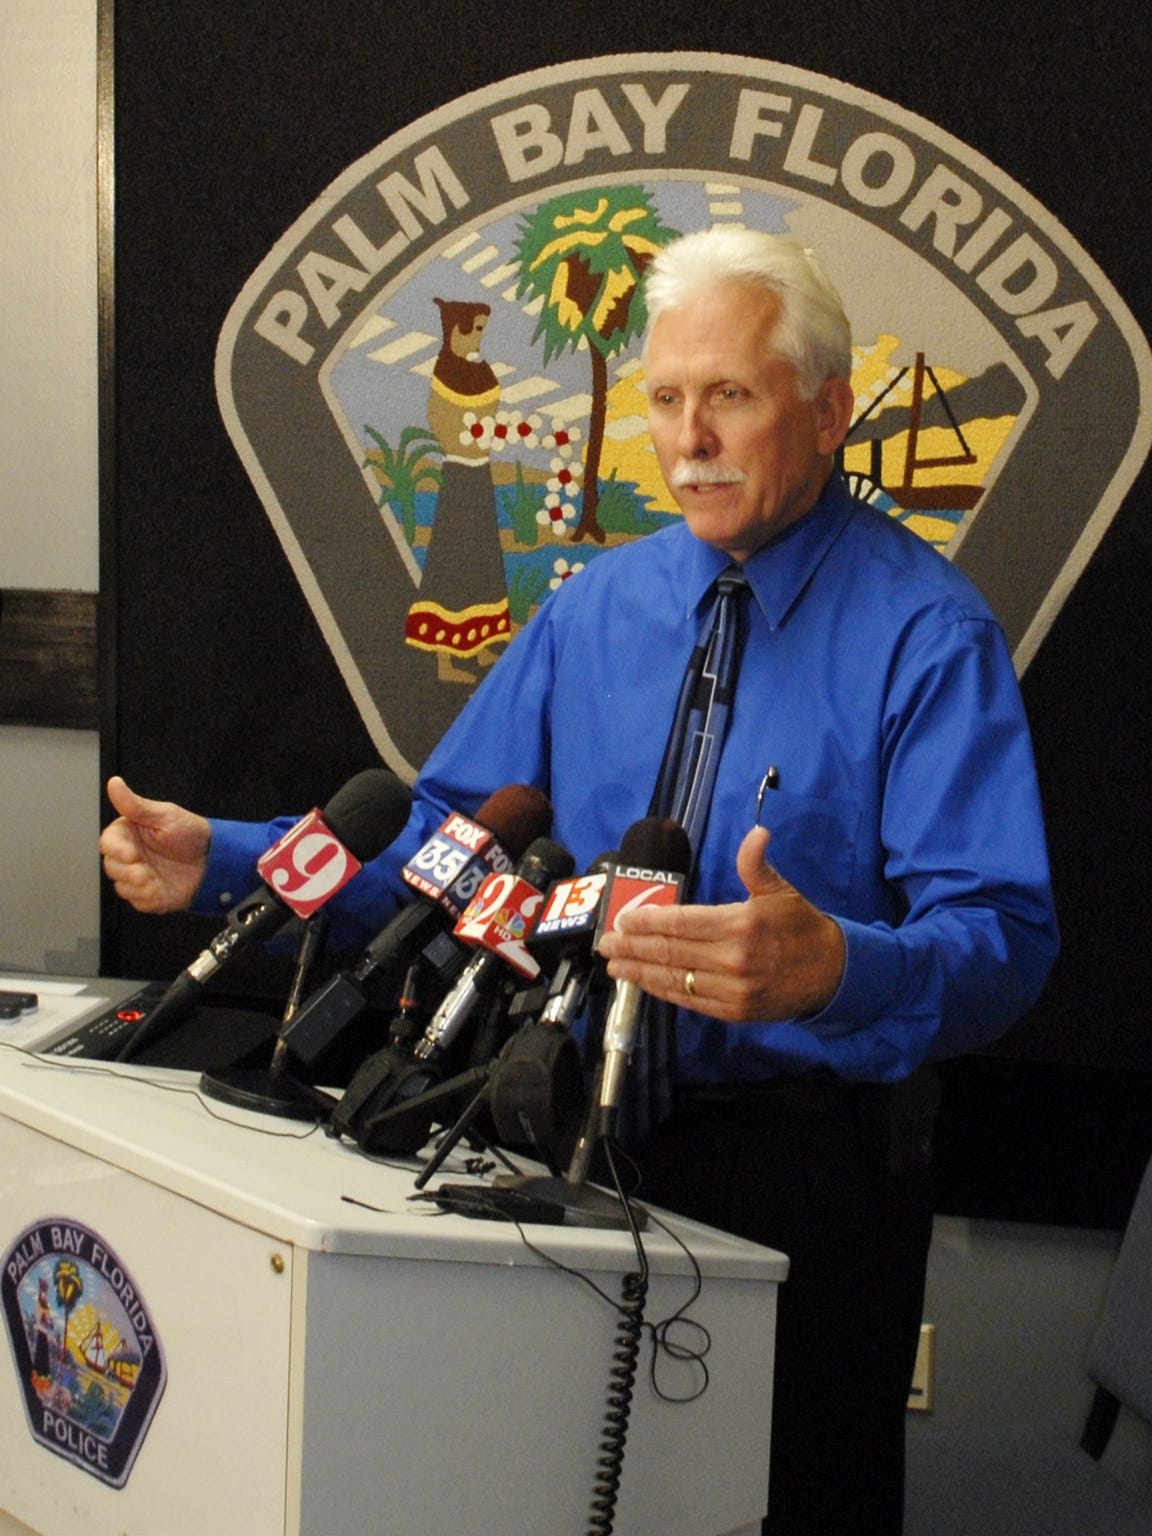 Detective Ernie Diebel, the lead investigator, discussed